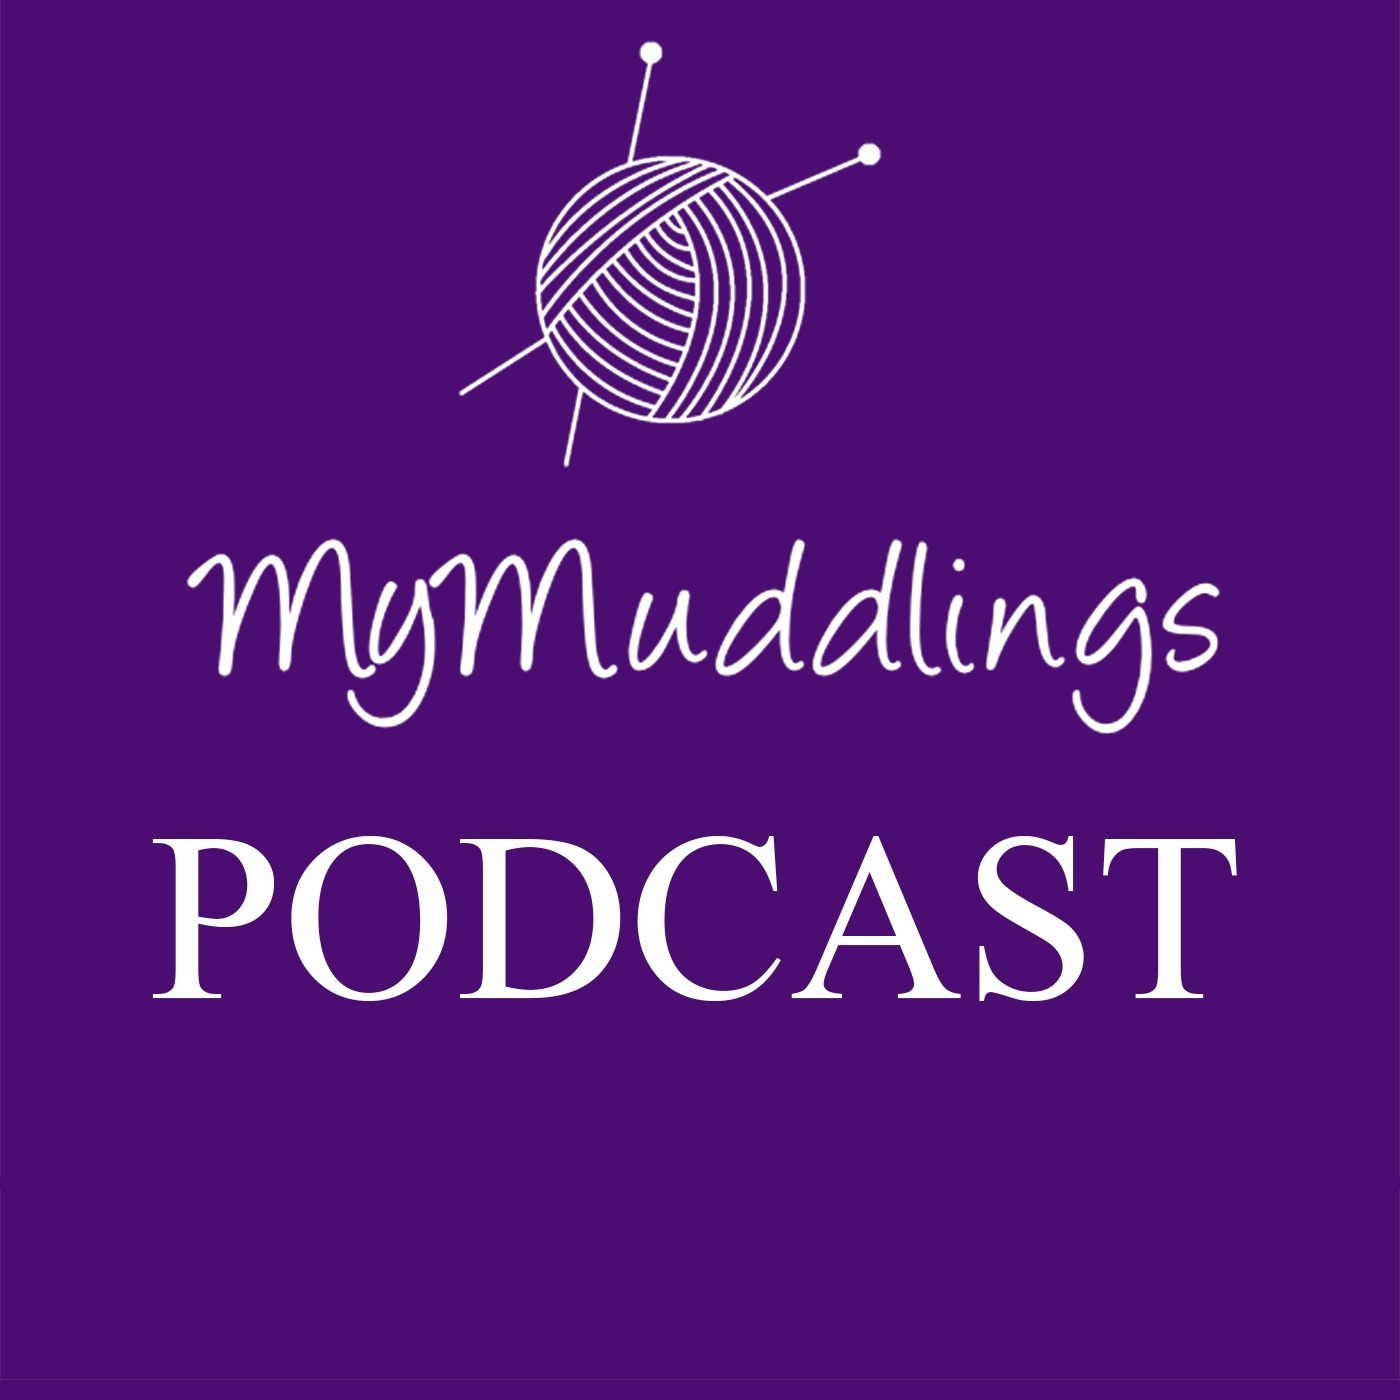 MyMuddlings Podcast: All about knitting, sewing and other crafty pursuits!